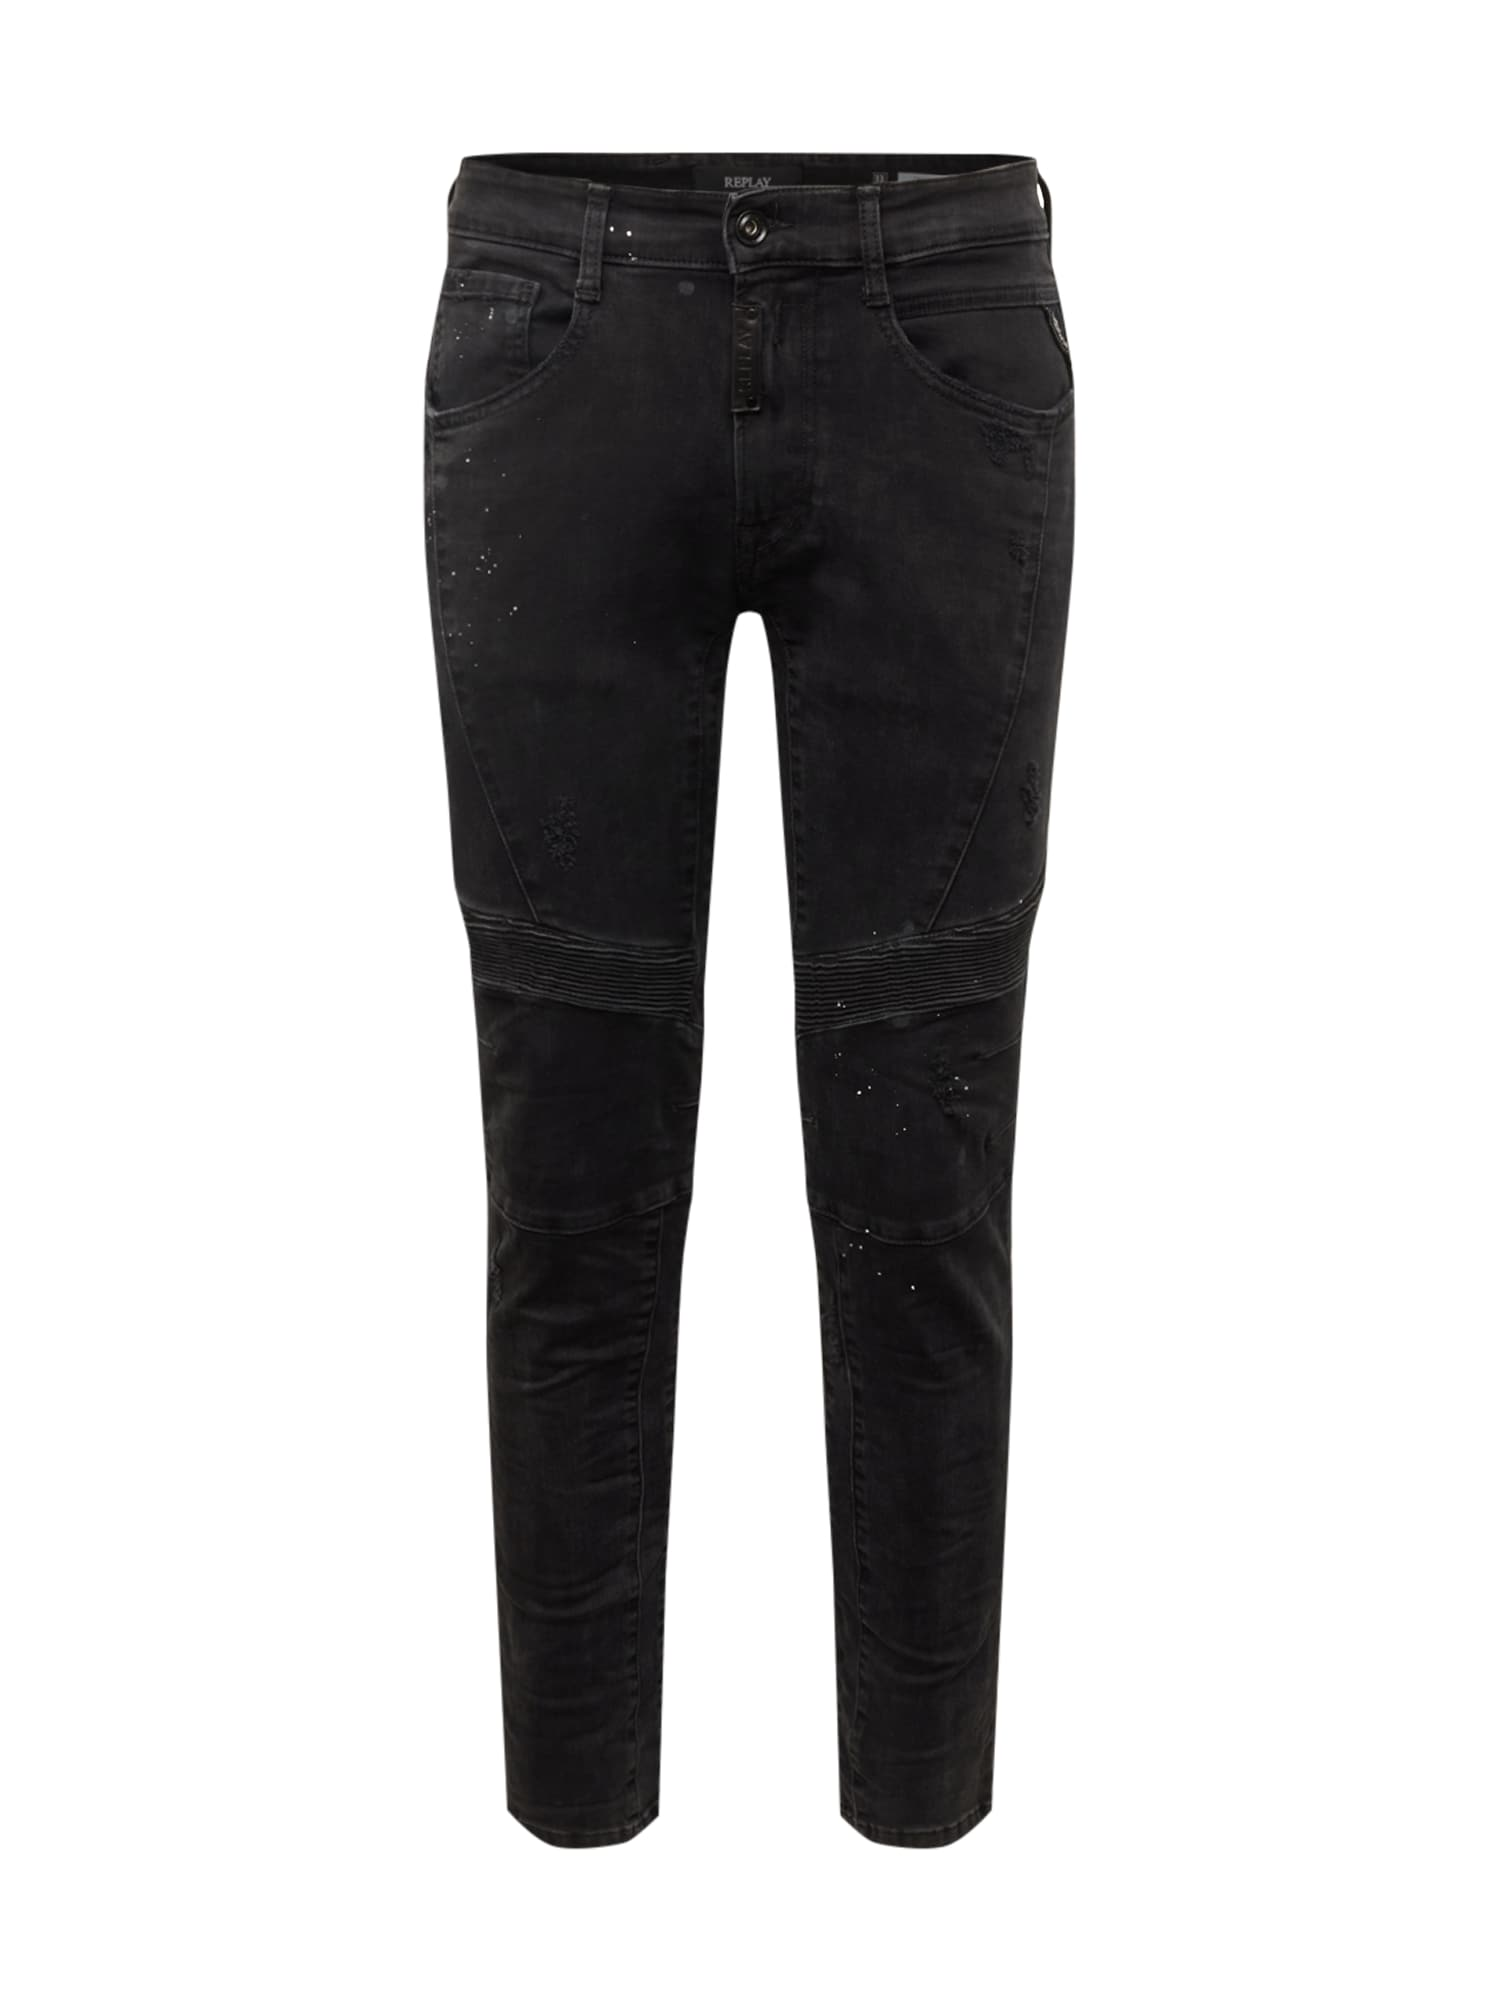 REPLAY Jeans 'ZALDOK'  denim negru